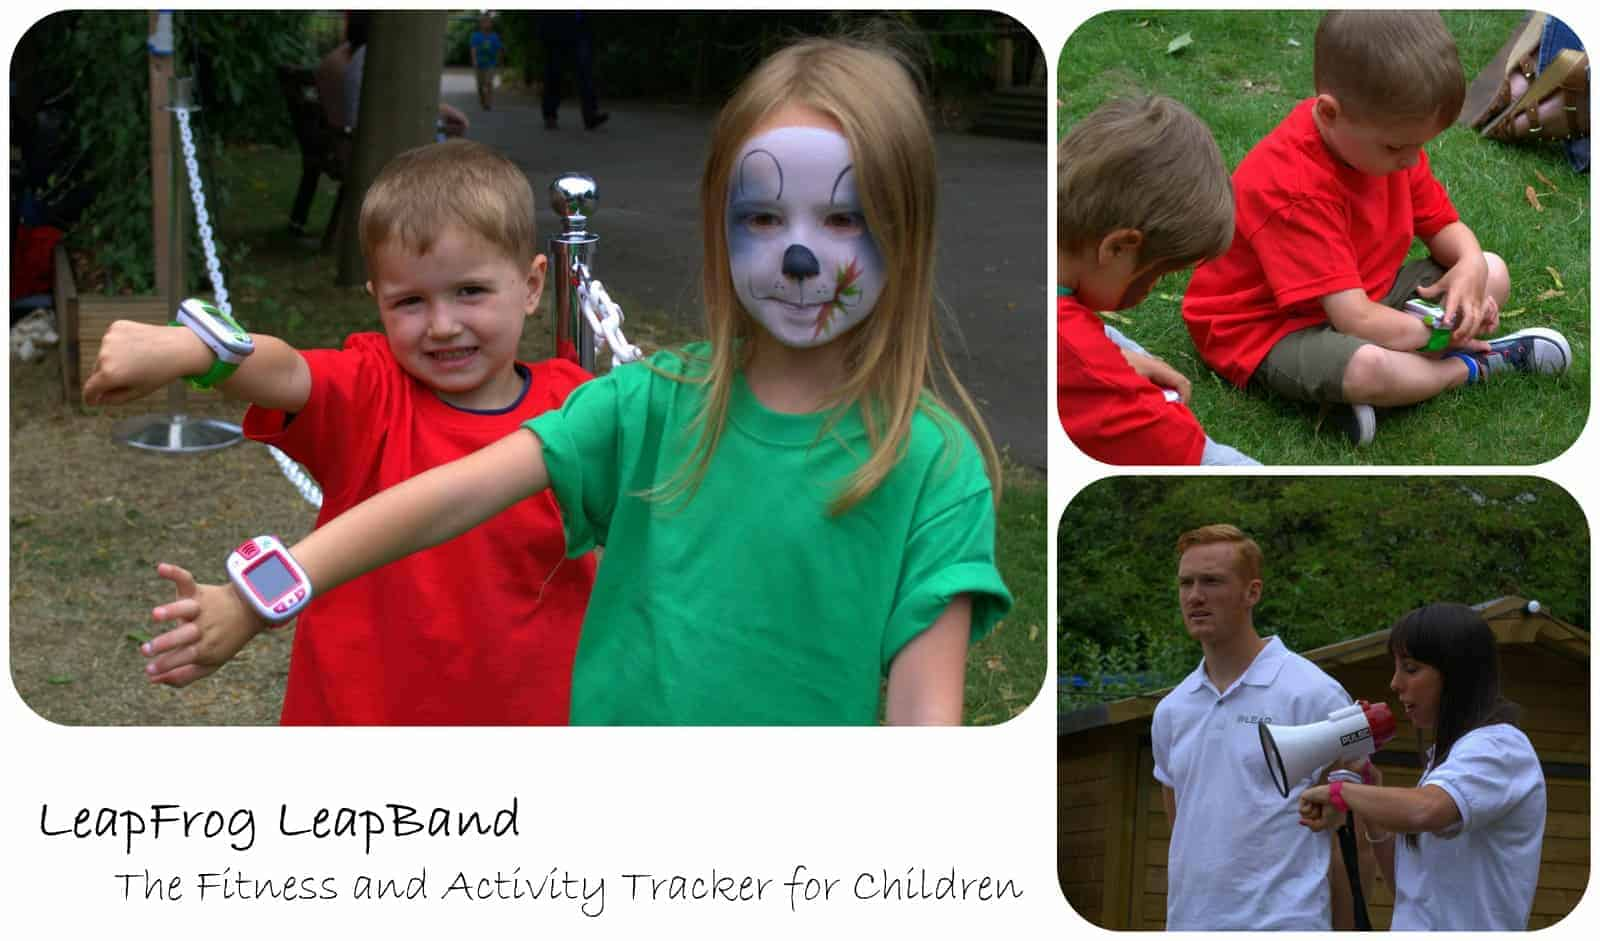 LeapFrog Leap Band, London Zoo, Sporting Heroes and a missing child!